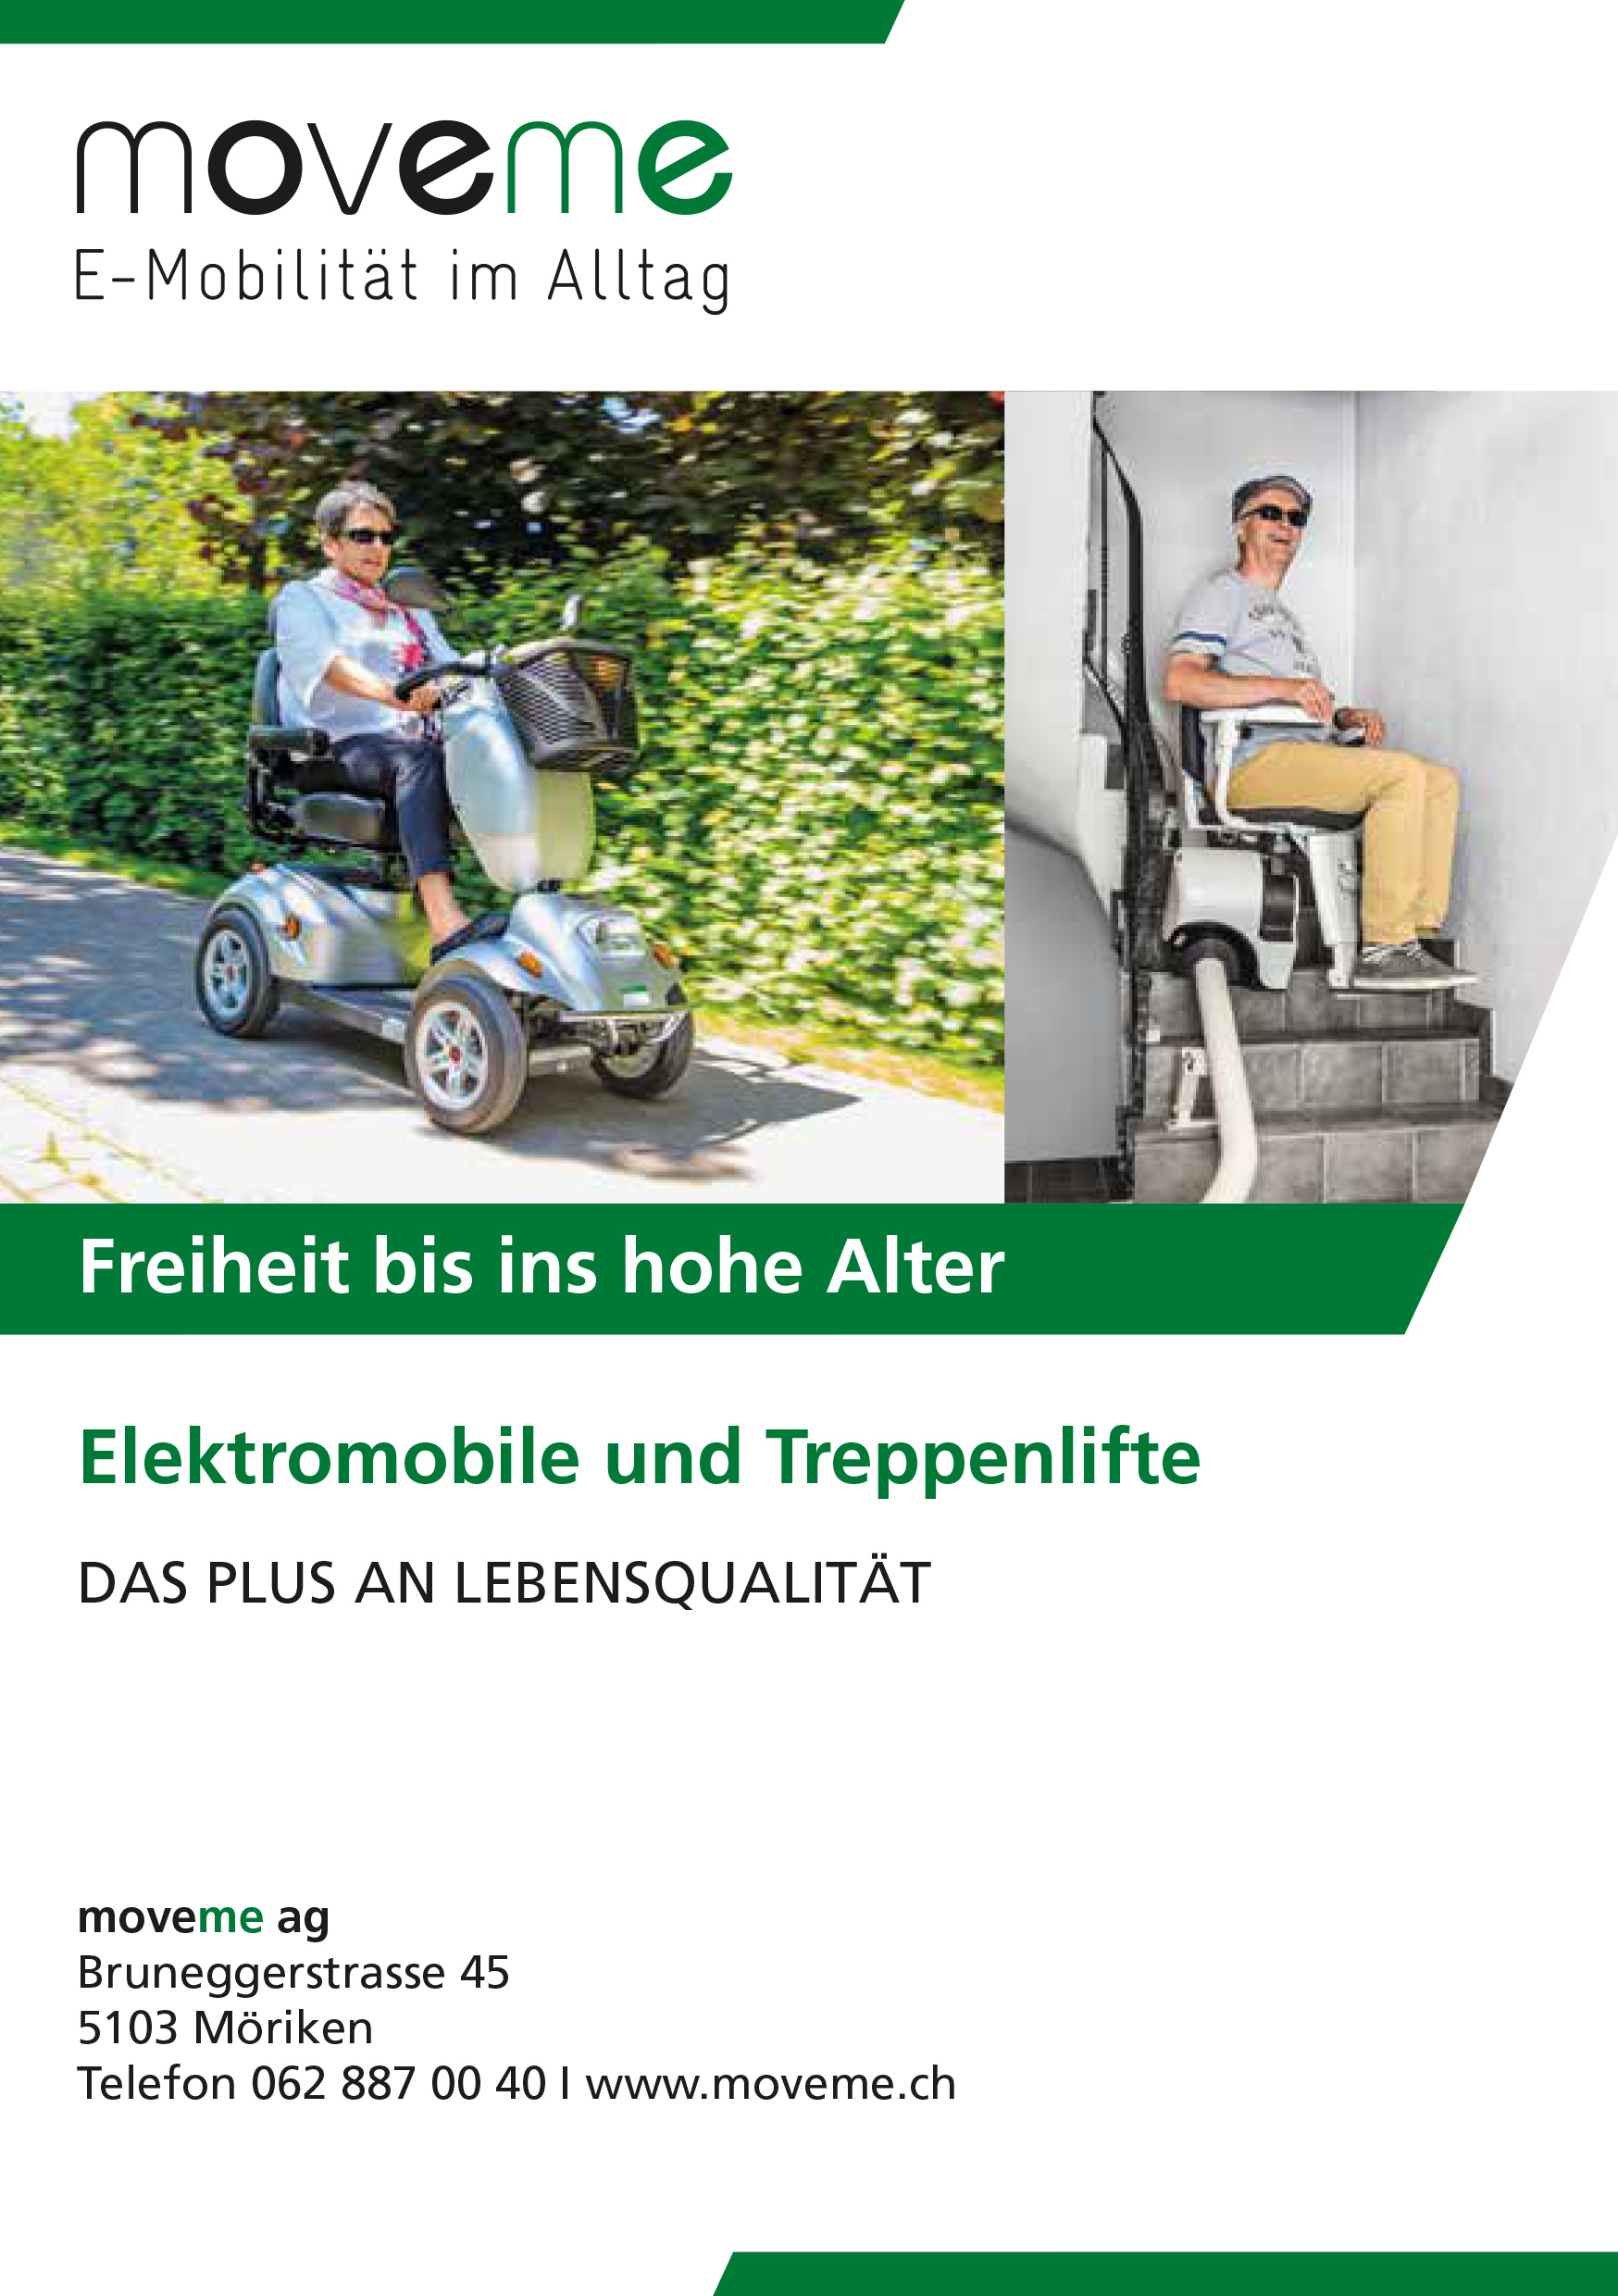 Elektromobile und Treppenlifte von moveme ag in Möriken, Grosser Showroom